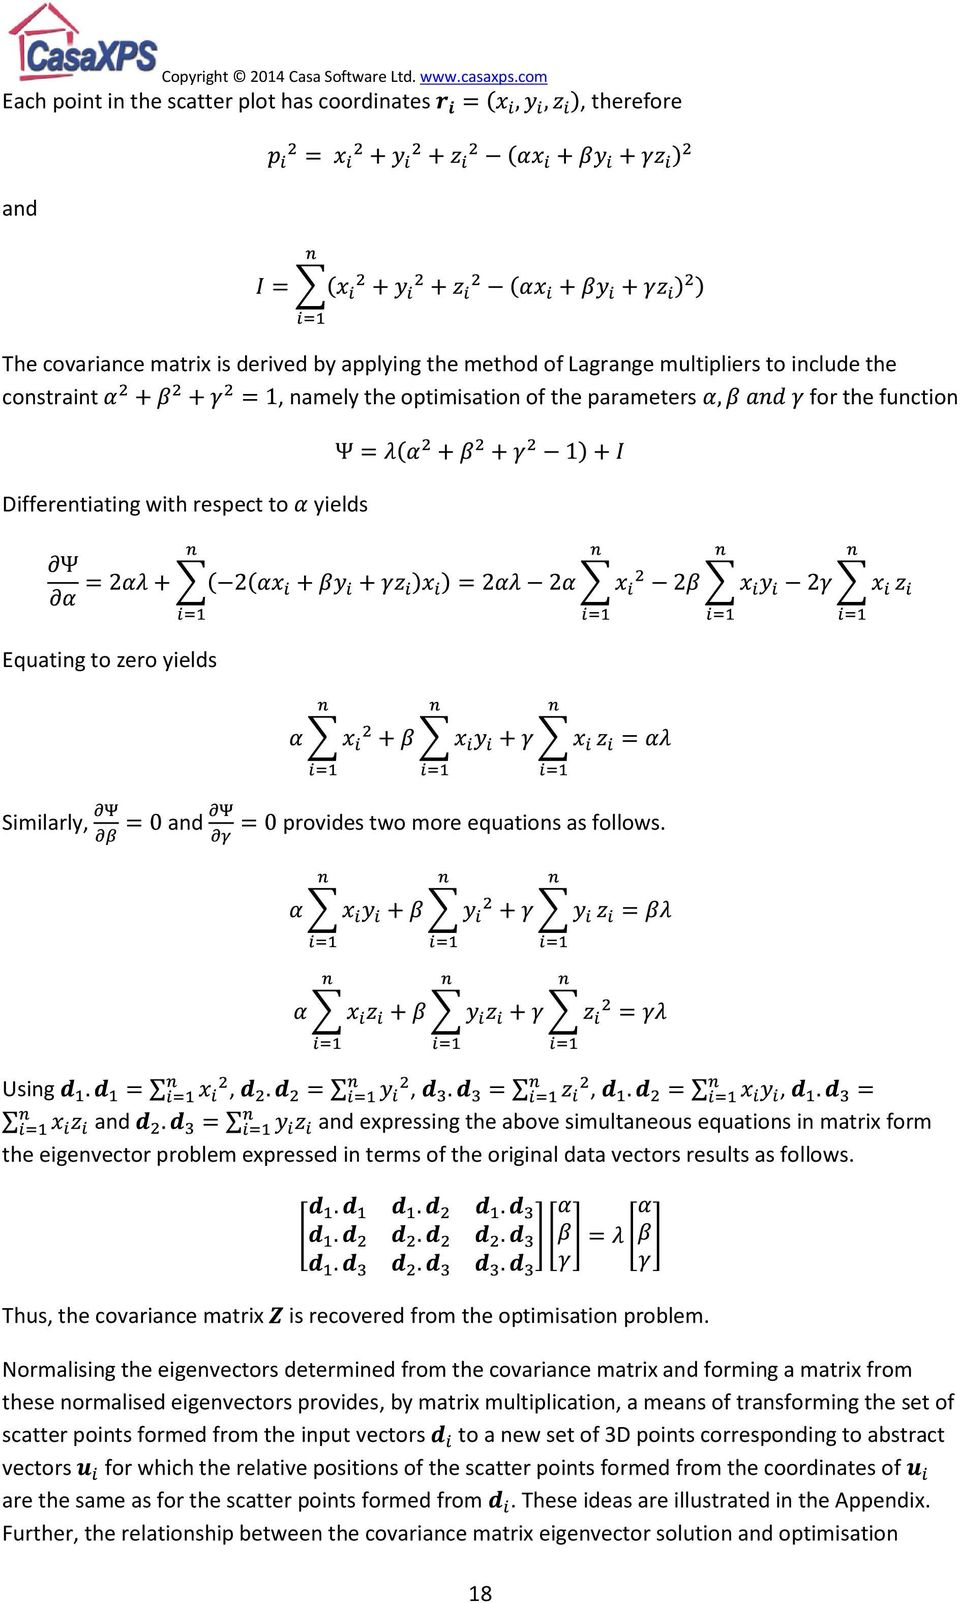 Using,,,, and and expressing the above simultaneous equations in matrix form the eigenvector problem expressed in terms of the original data vectors results as follows.